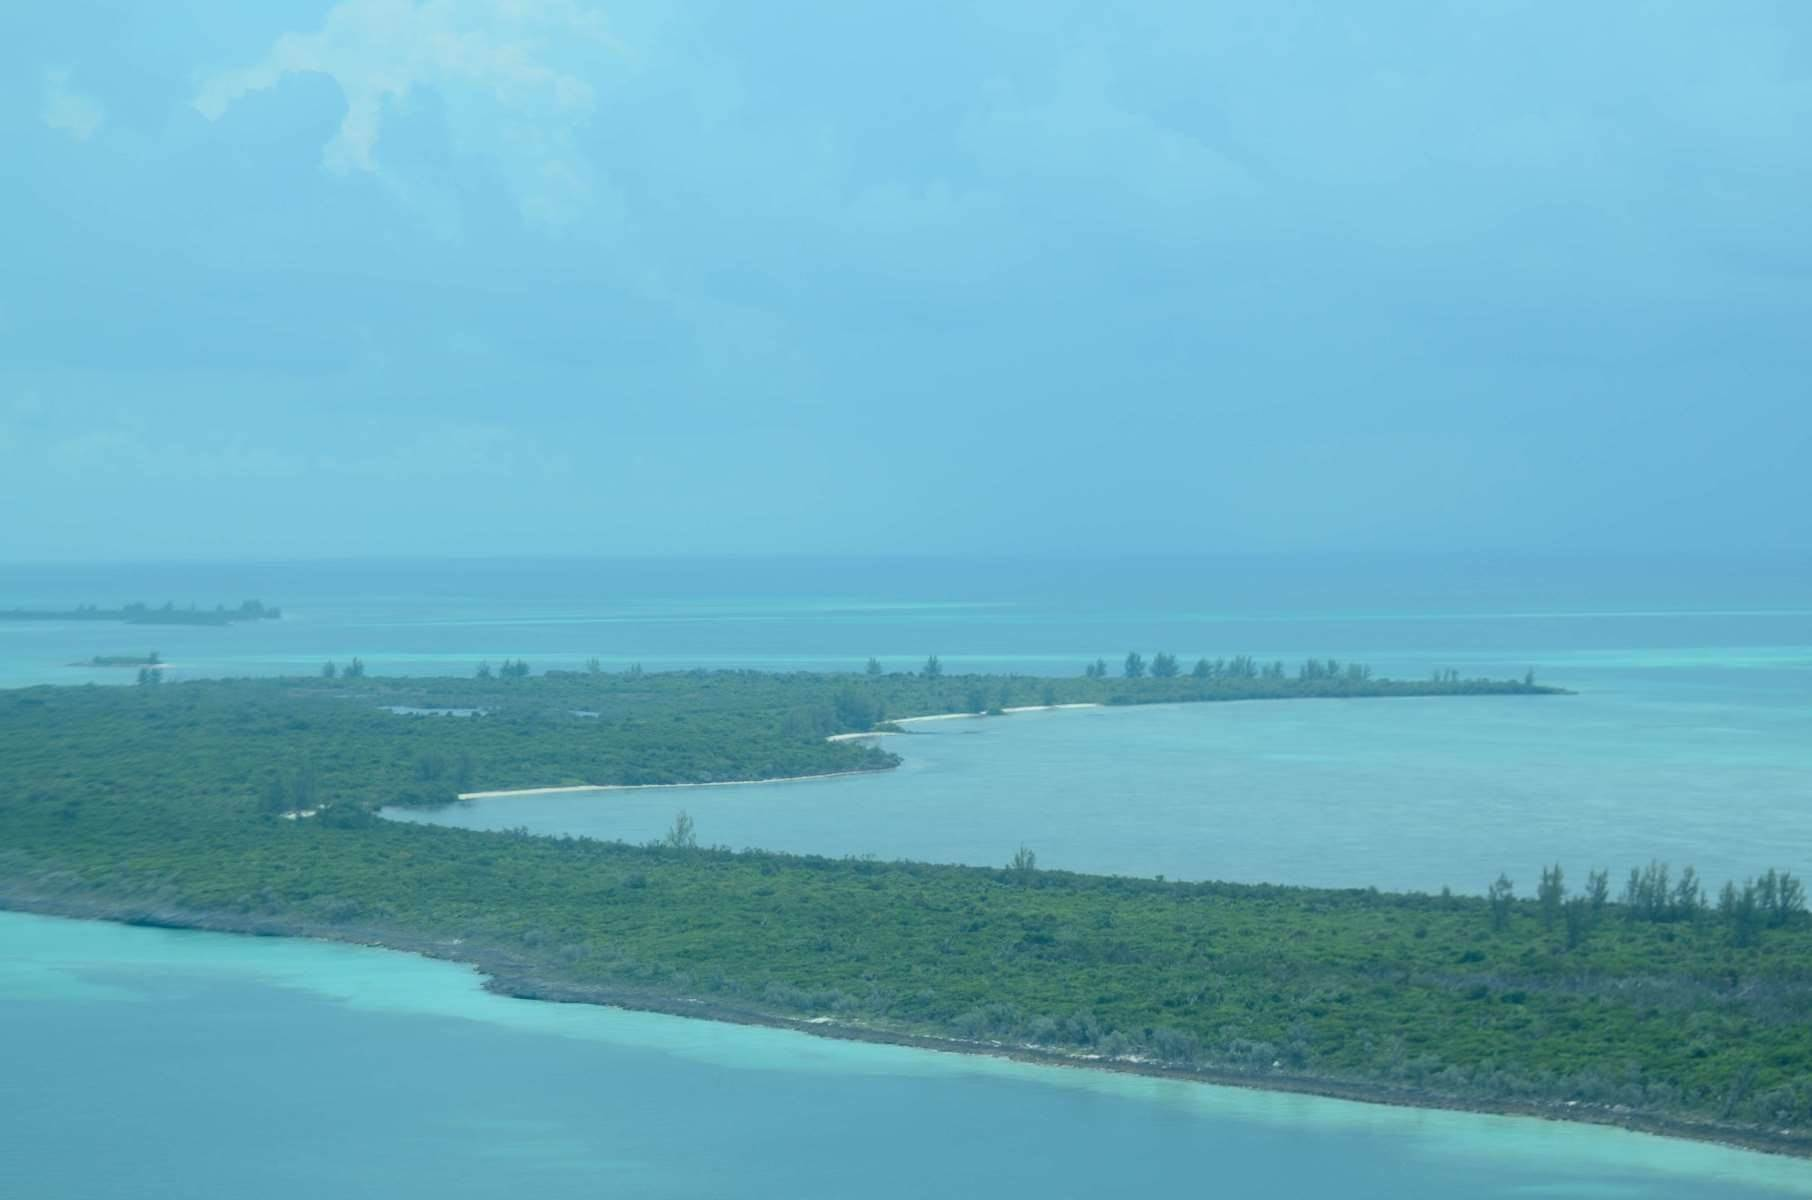 6. Private Islands por un Venta en Large Private Island in Abaco with approved development Plans - MLS 42074 Abaco, Bahamas